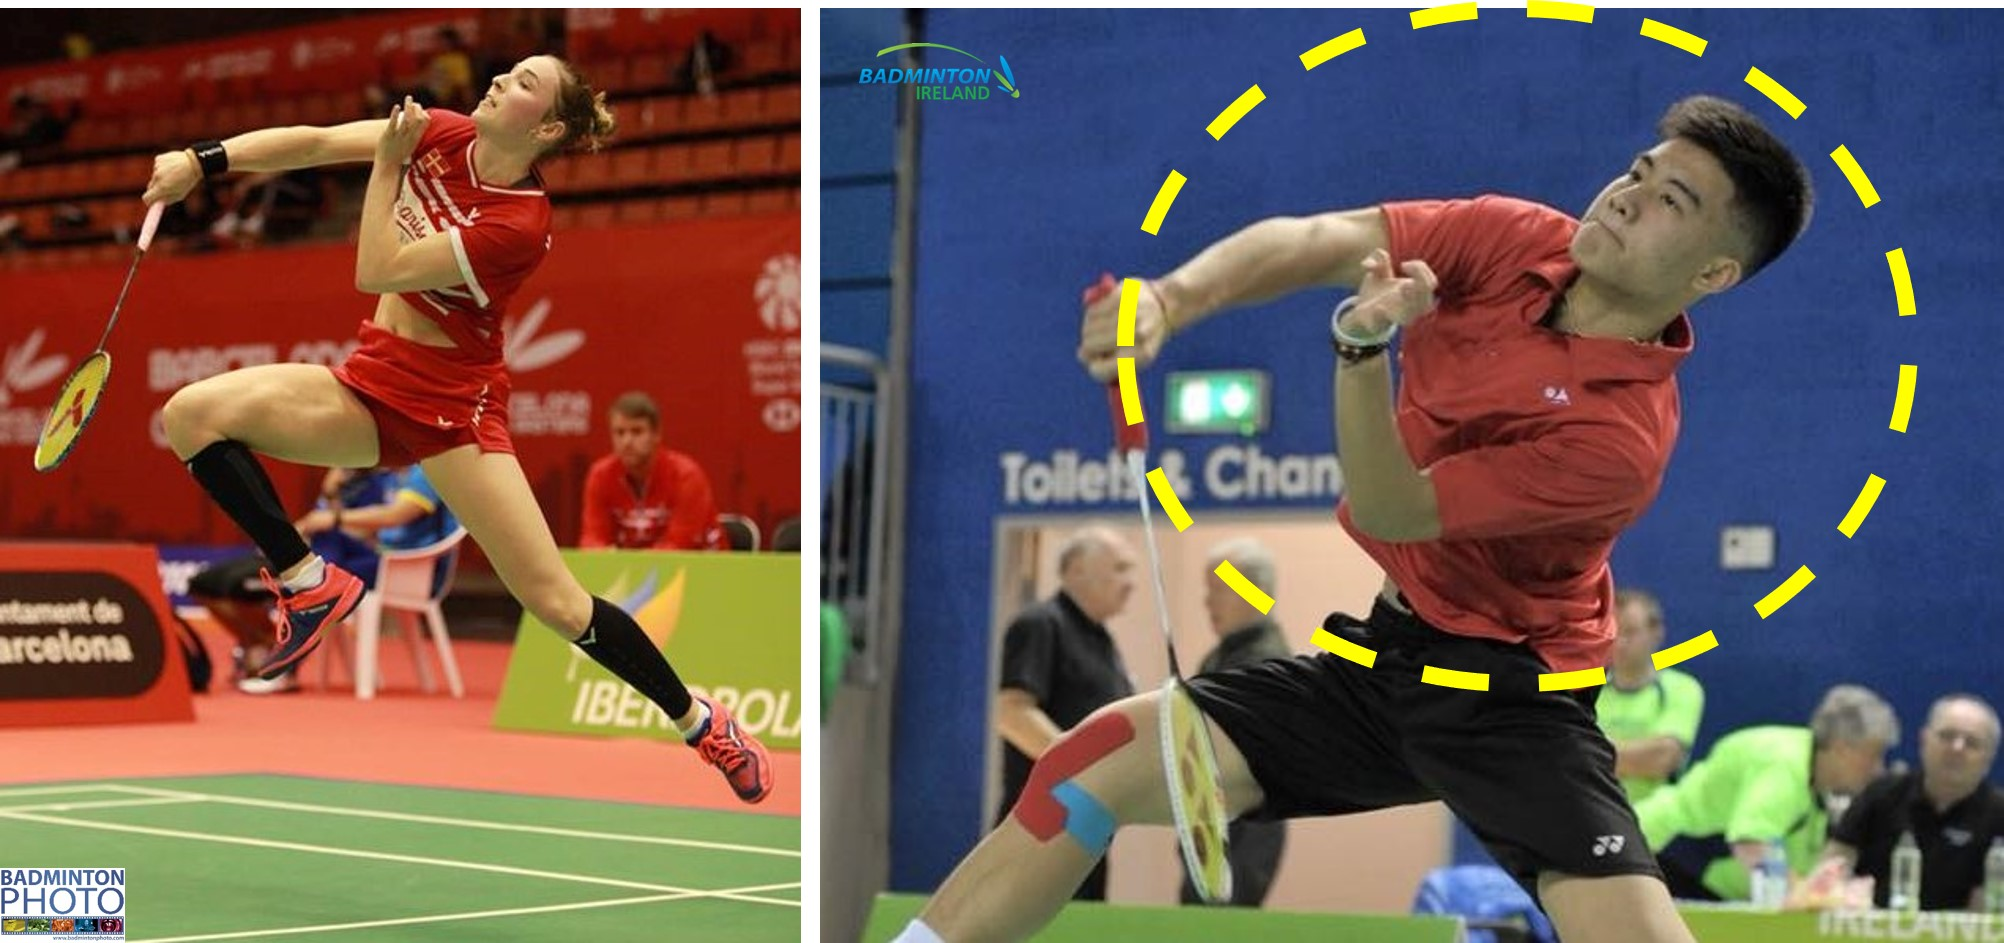 Upper body rotation in the round the head